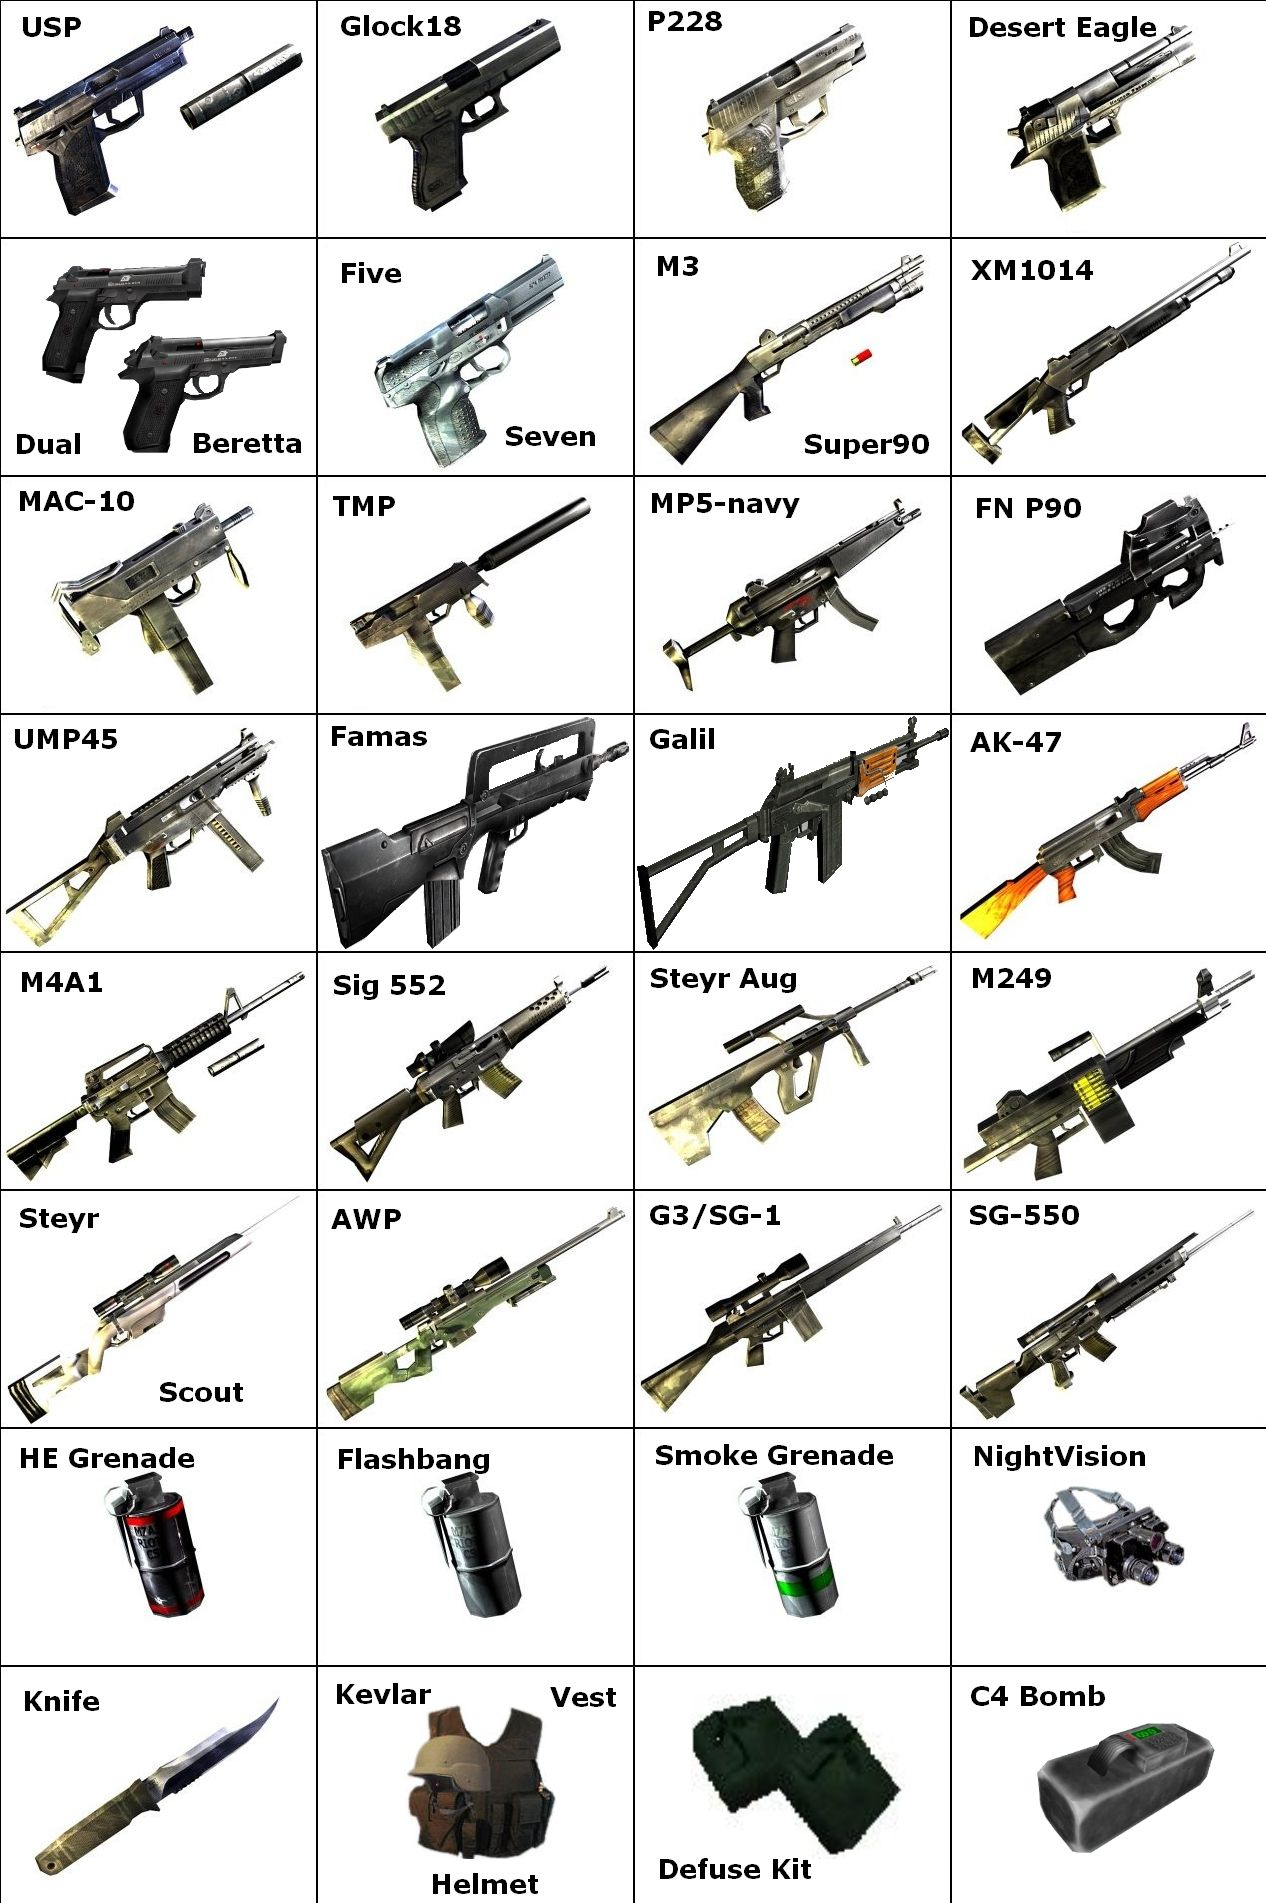 weapon of counter strike | Firearms | Weapons, Weapons guns